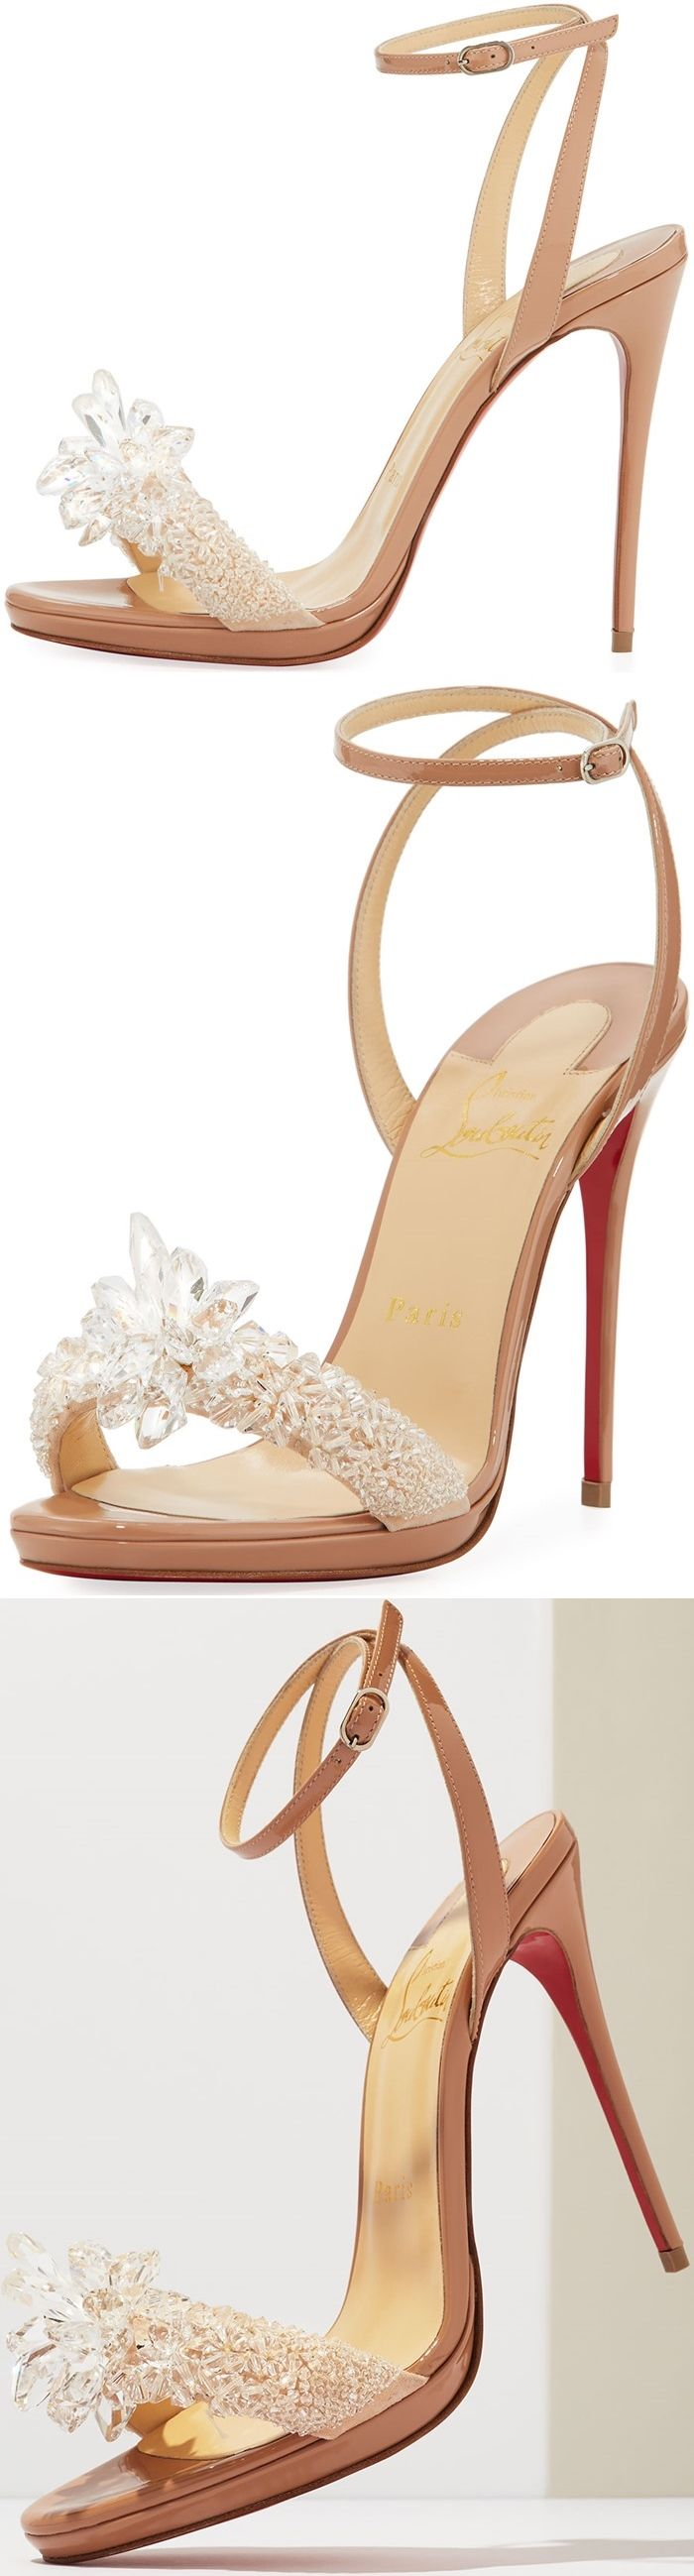 a9babfc6dddf Christian Louboutin  Crystal Queen  Embellished Sandals